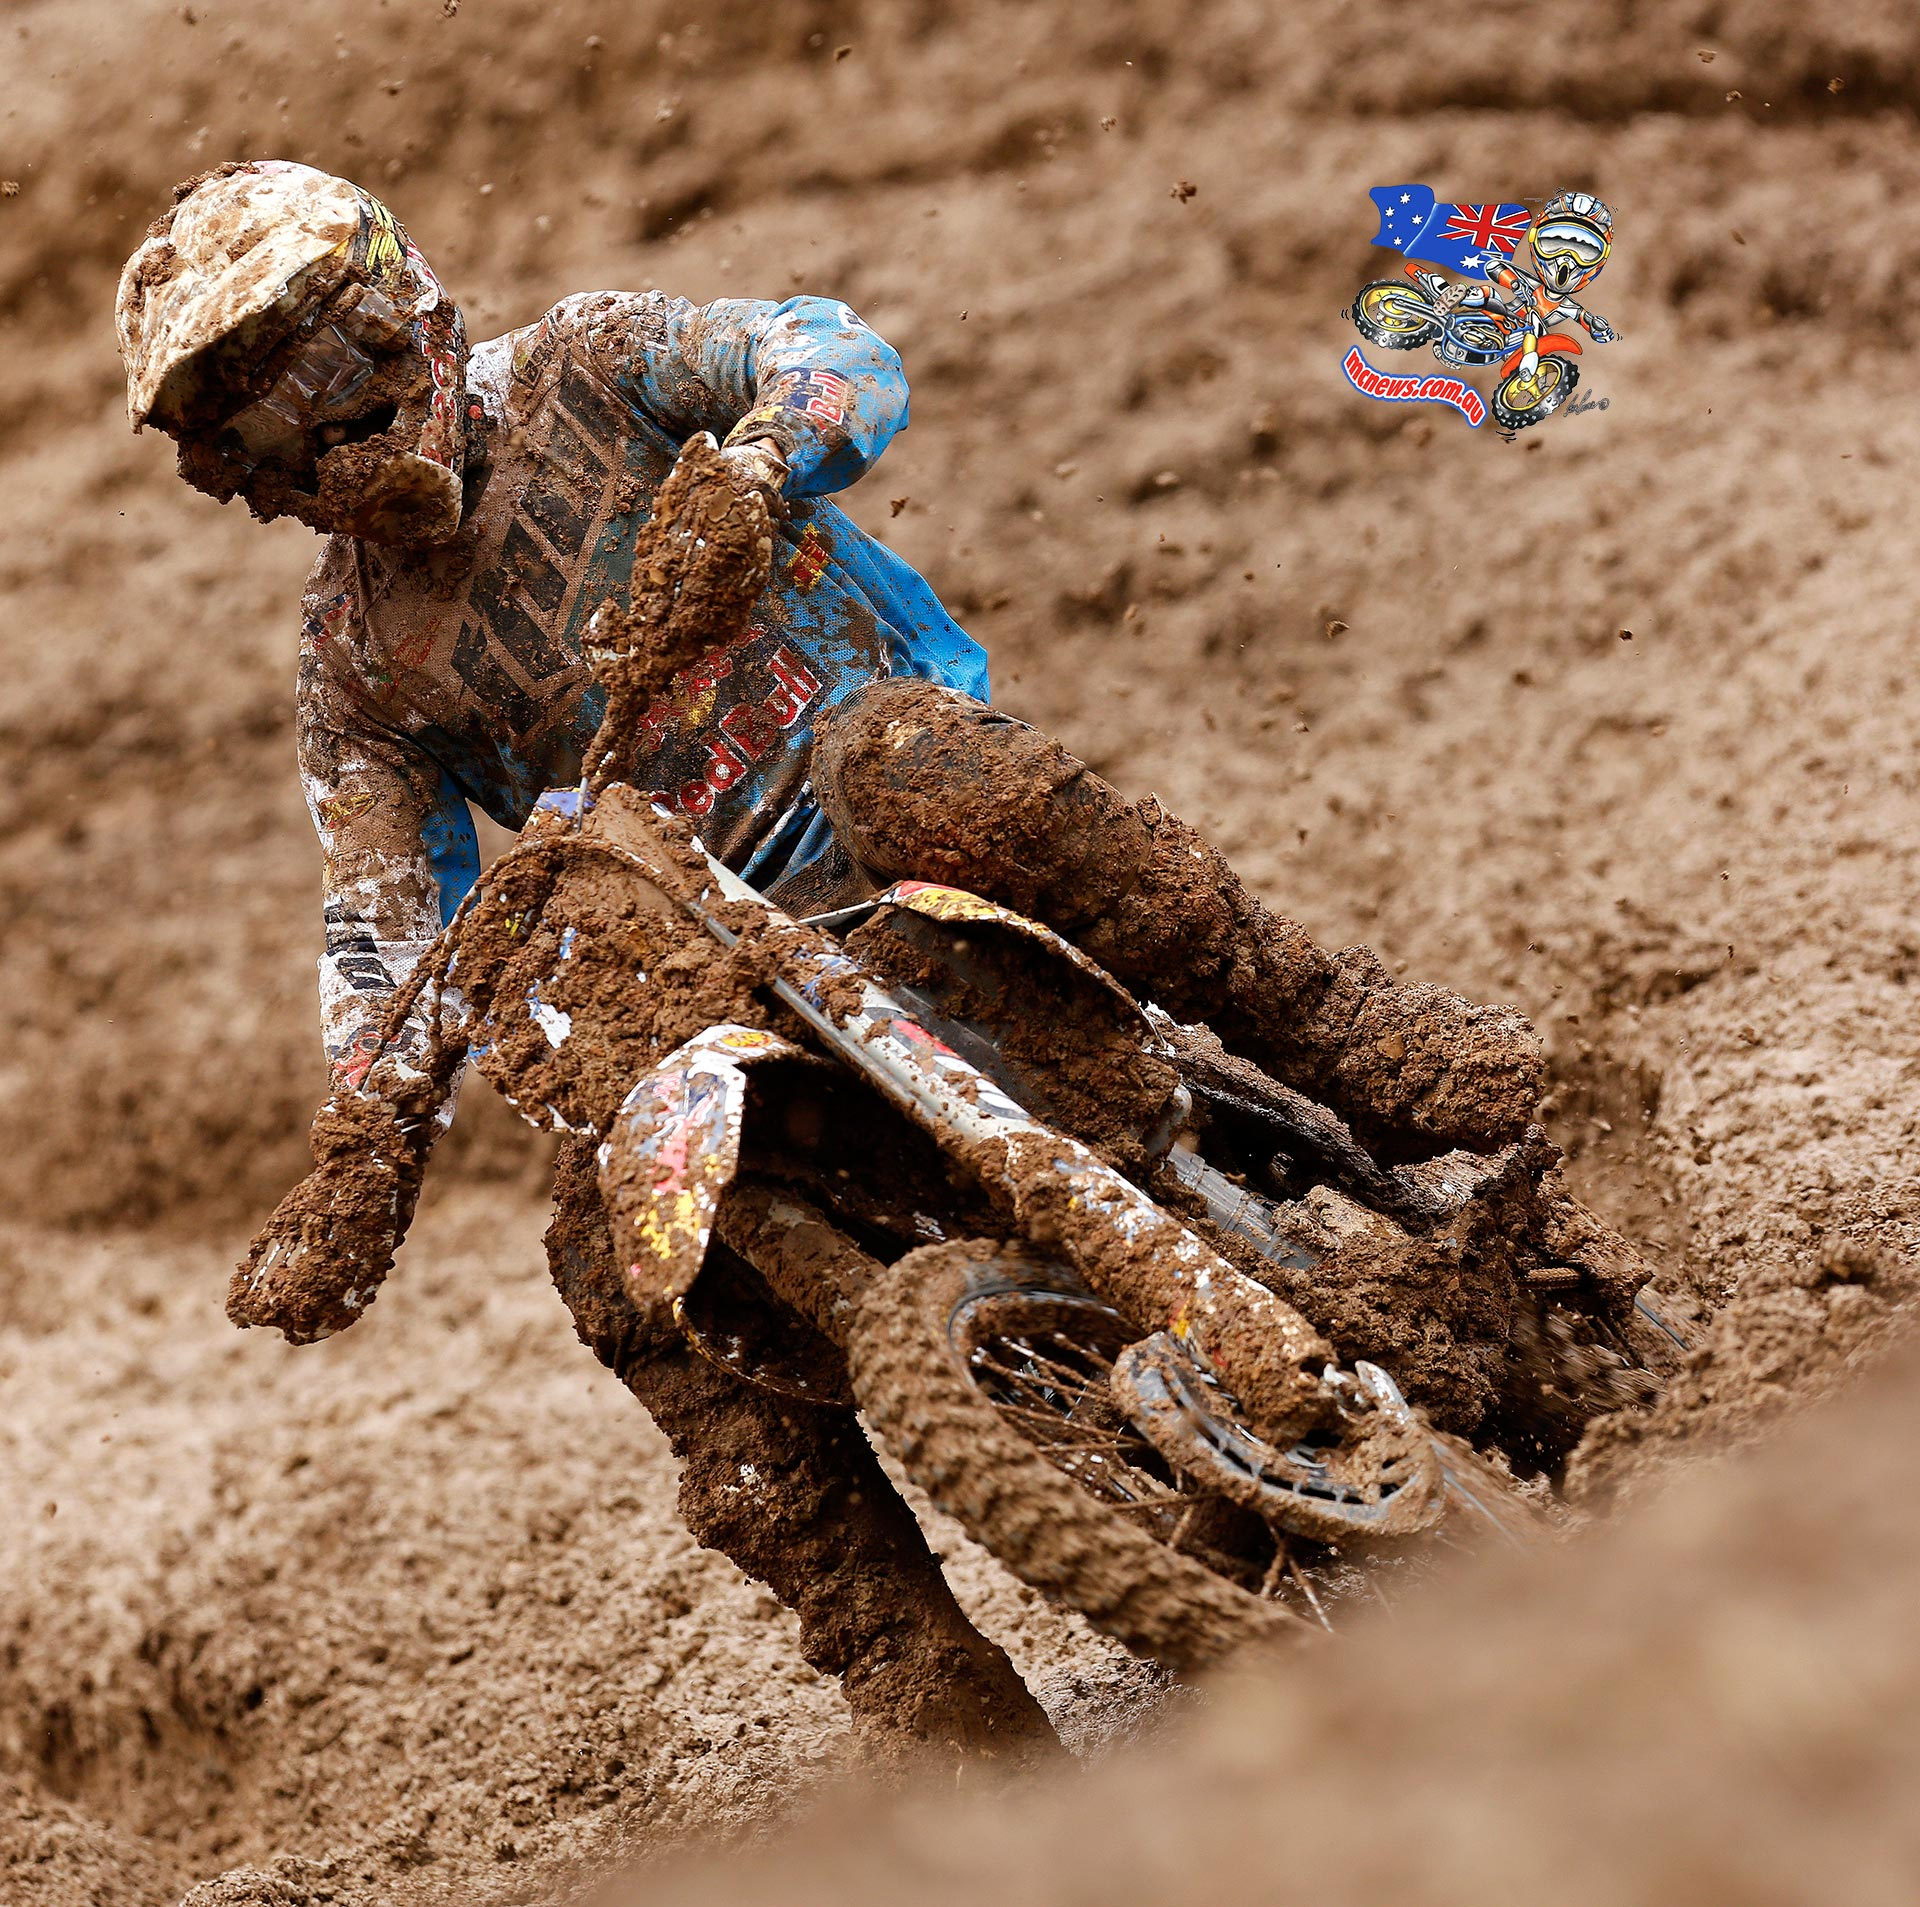 Todd Waters scored a podium result at the muddy Italian MXGP at Maggiora